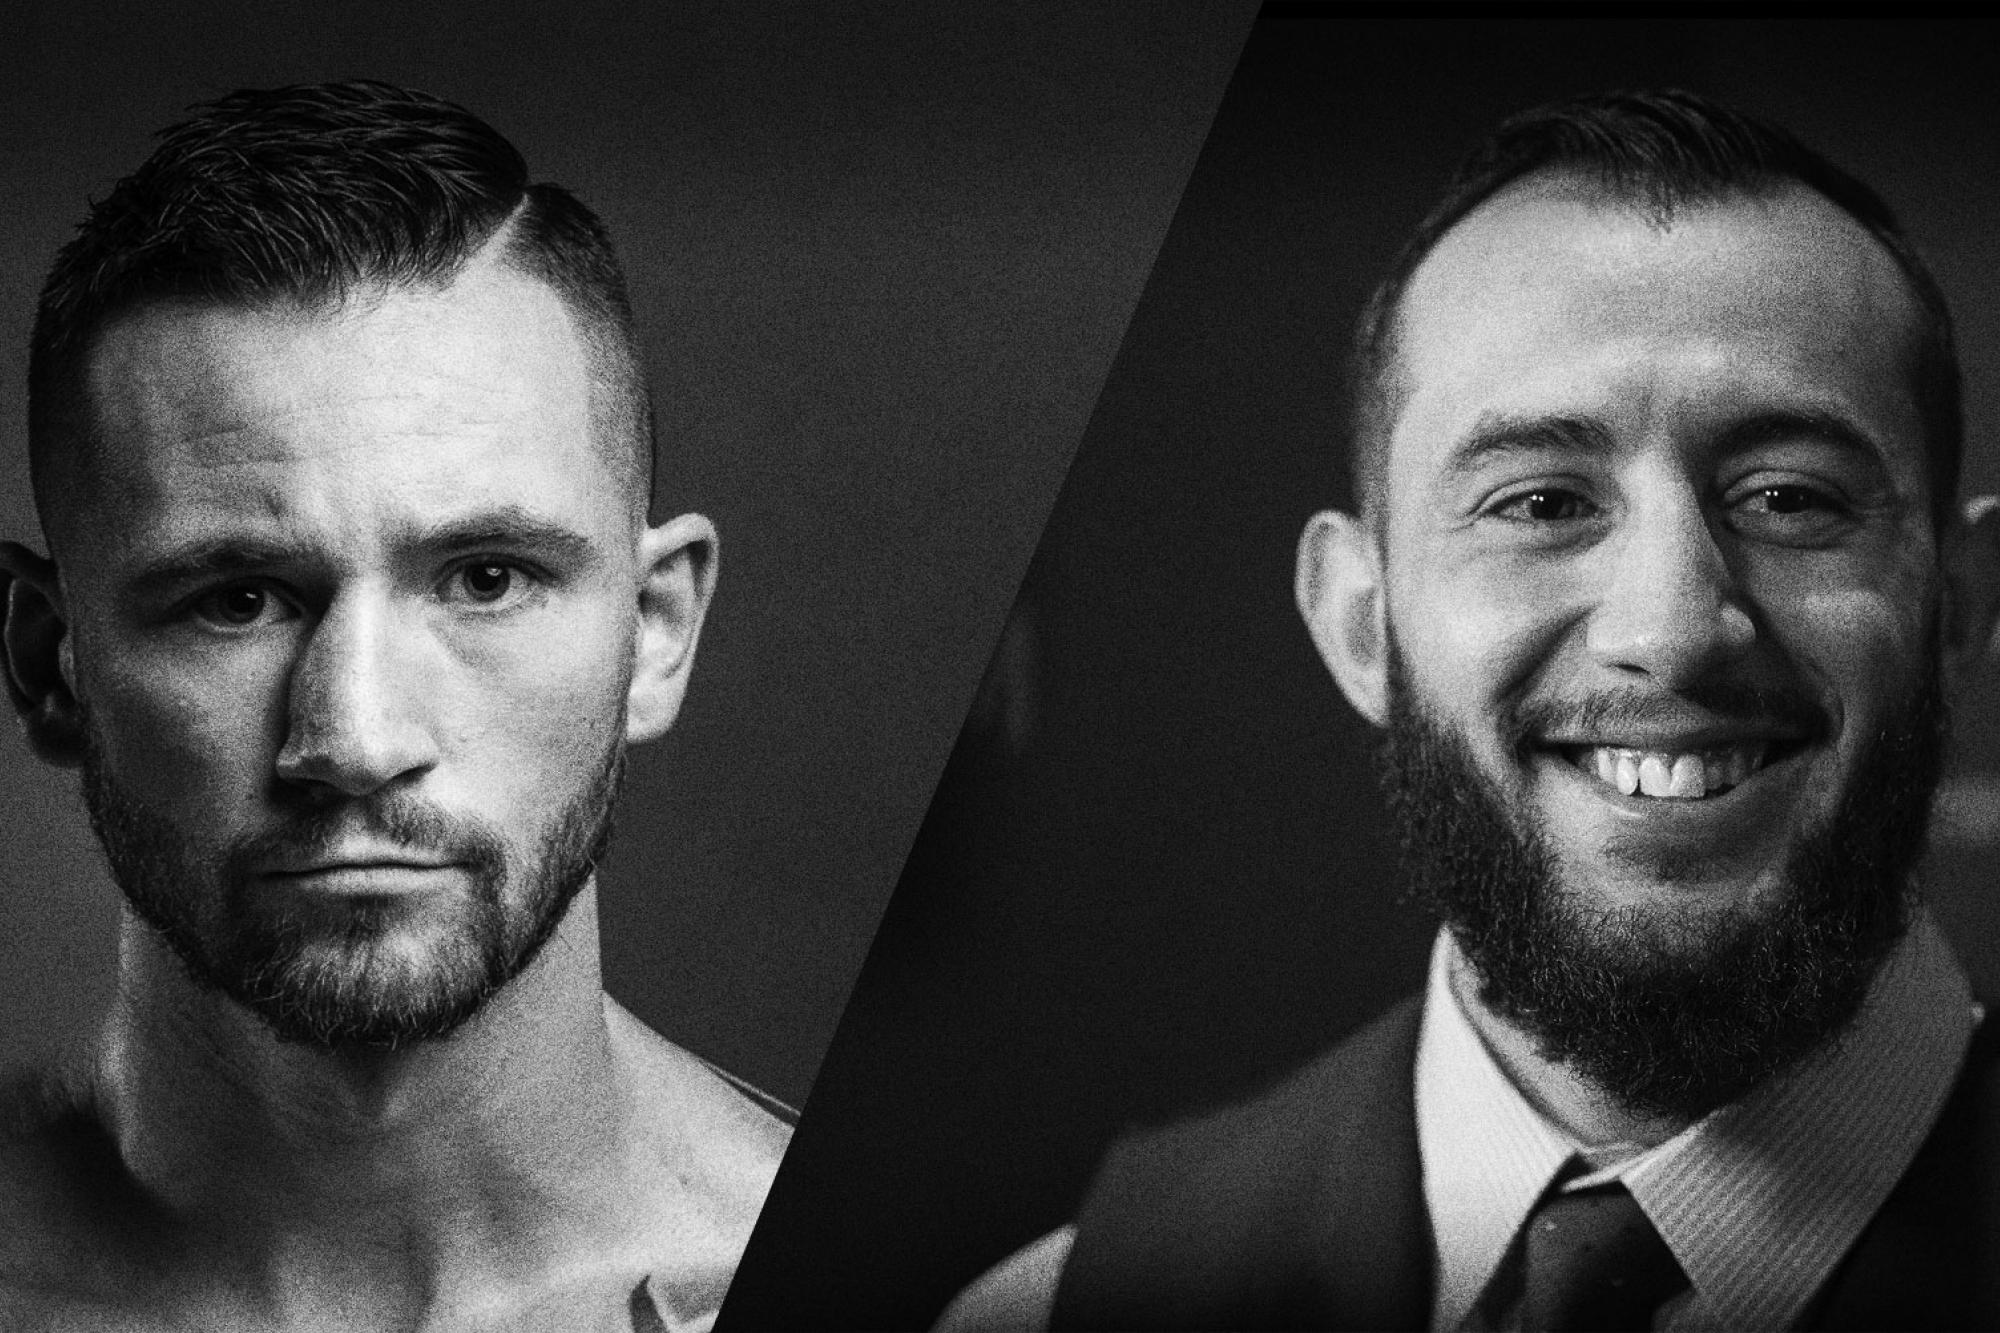 Unfiltered Episode 333: Dominick Reyes & Cody Crowley